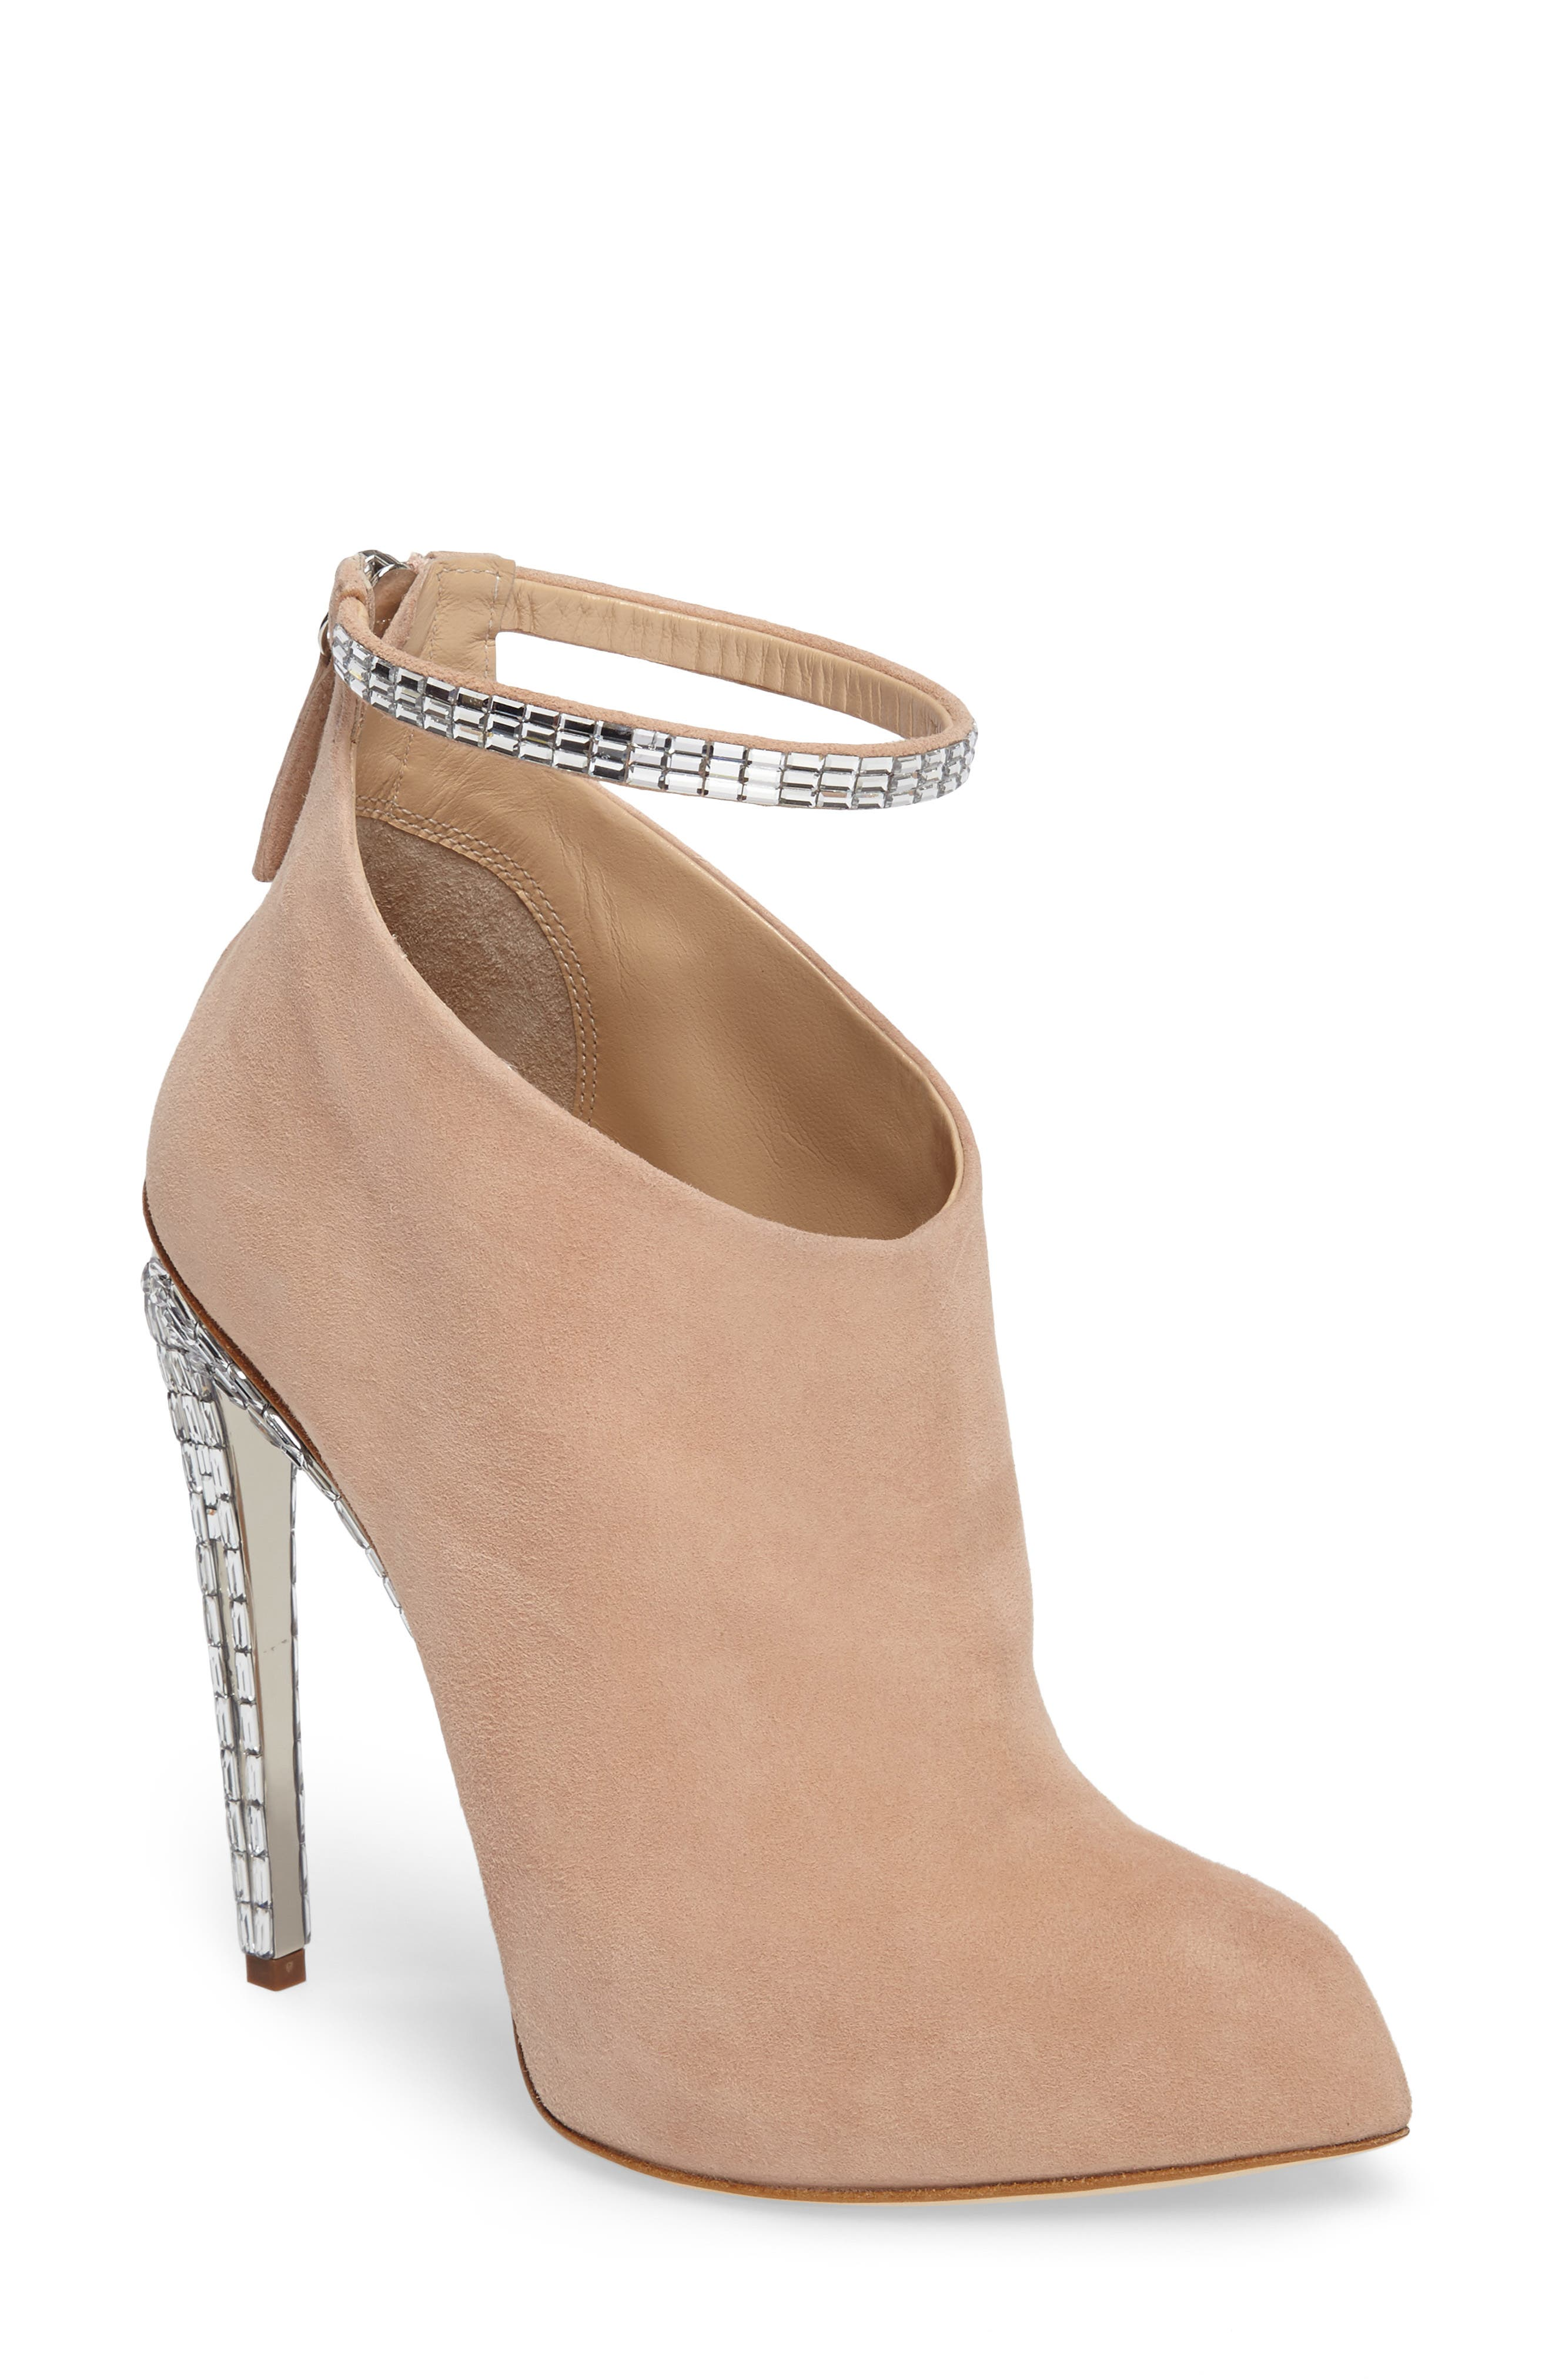 Giuseppe for Jennifer Lopez Ankle Strap Bootie,                             Main thumbnail 1, color,